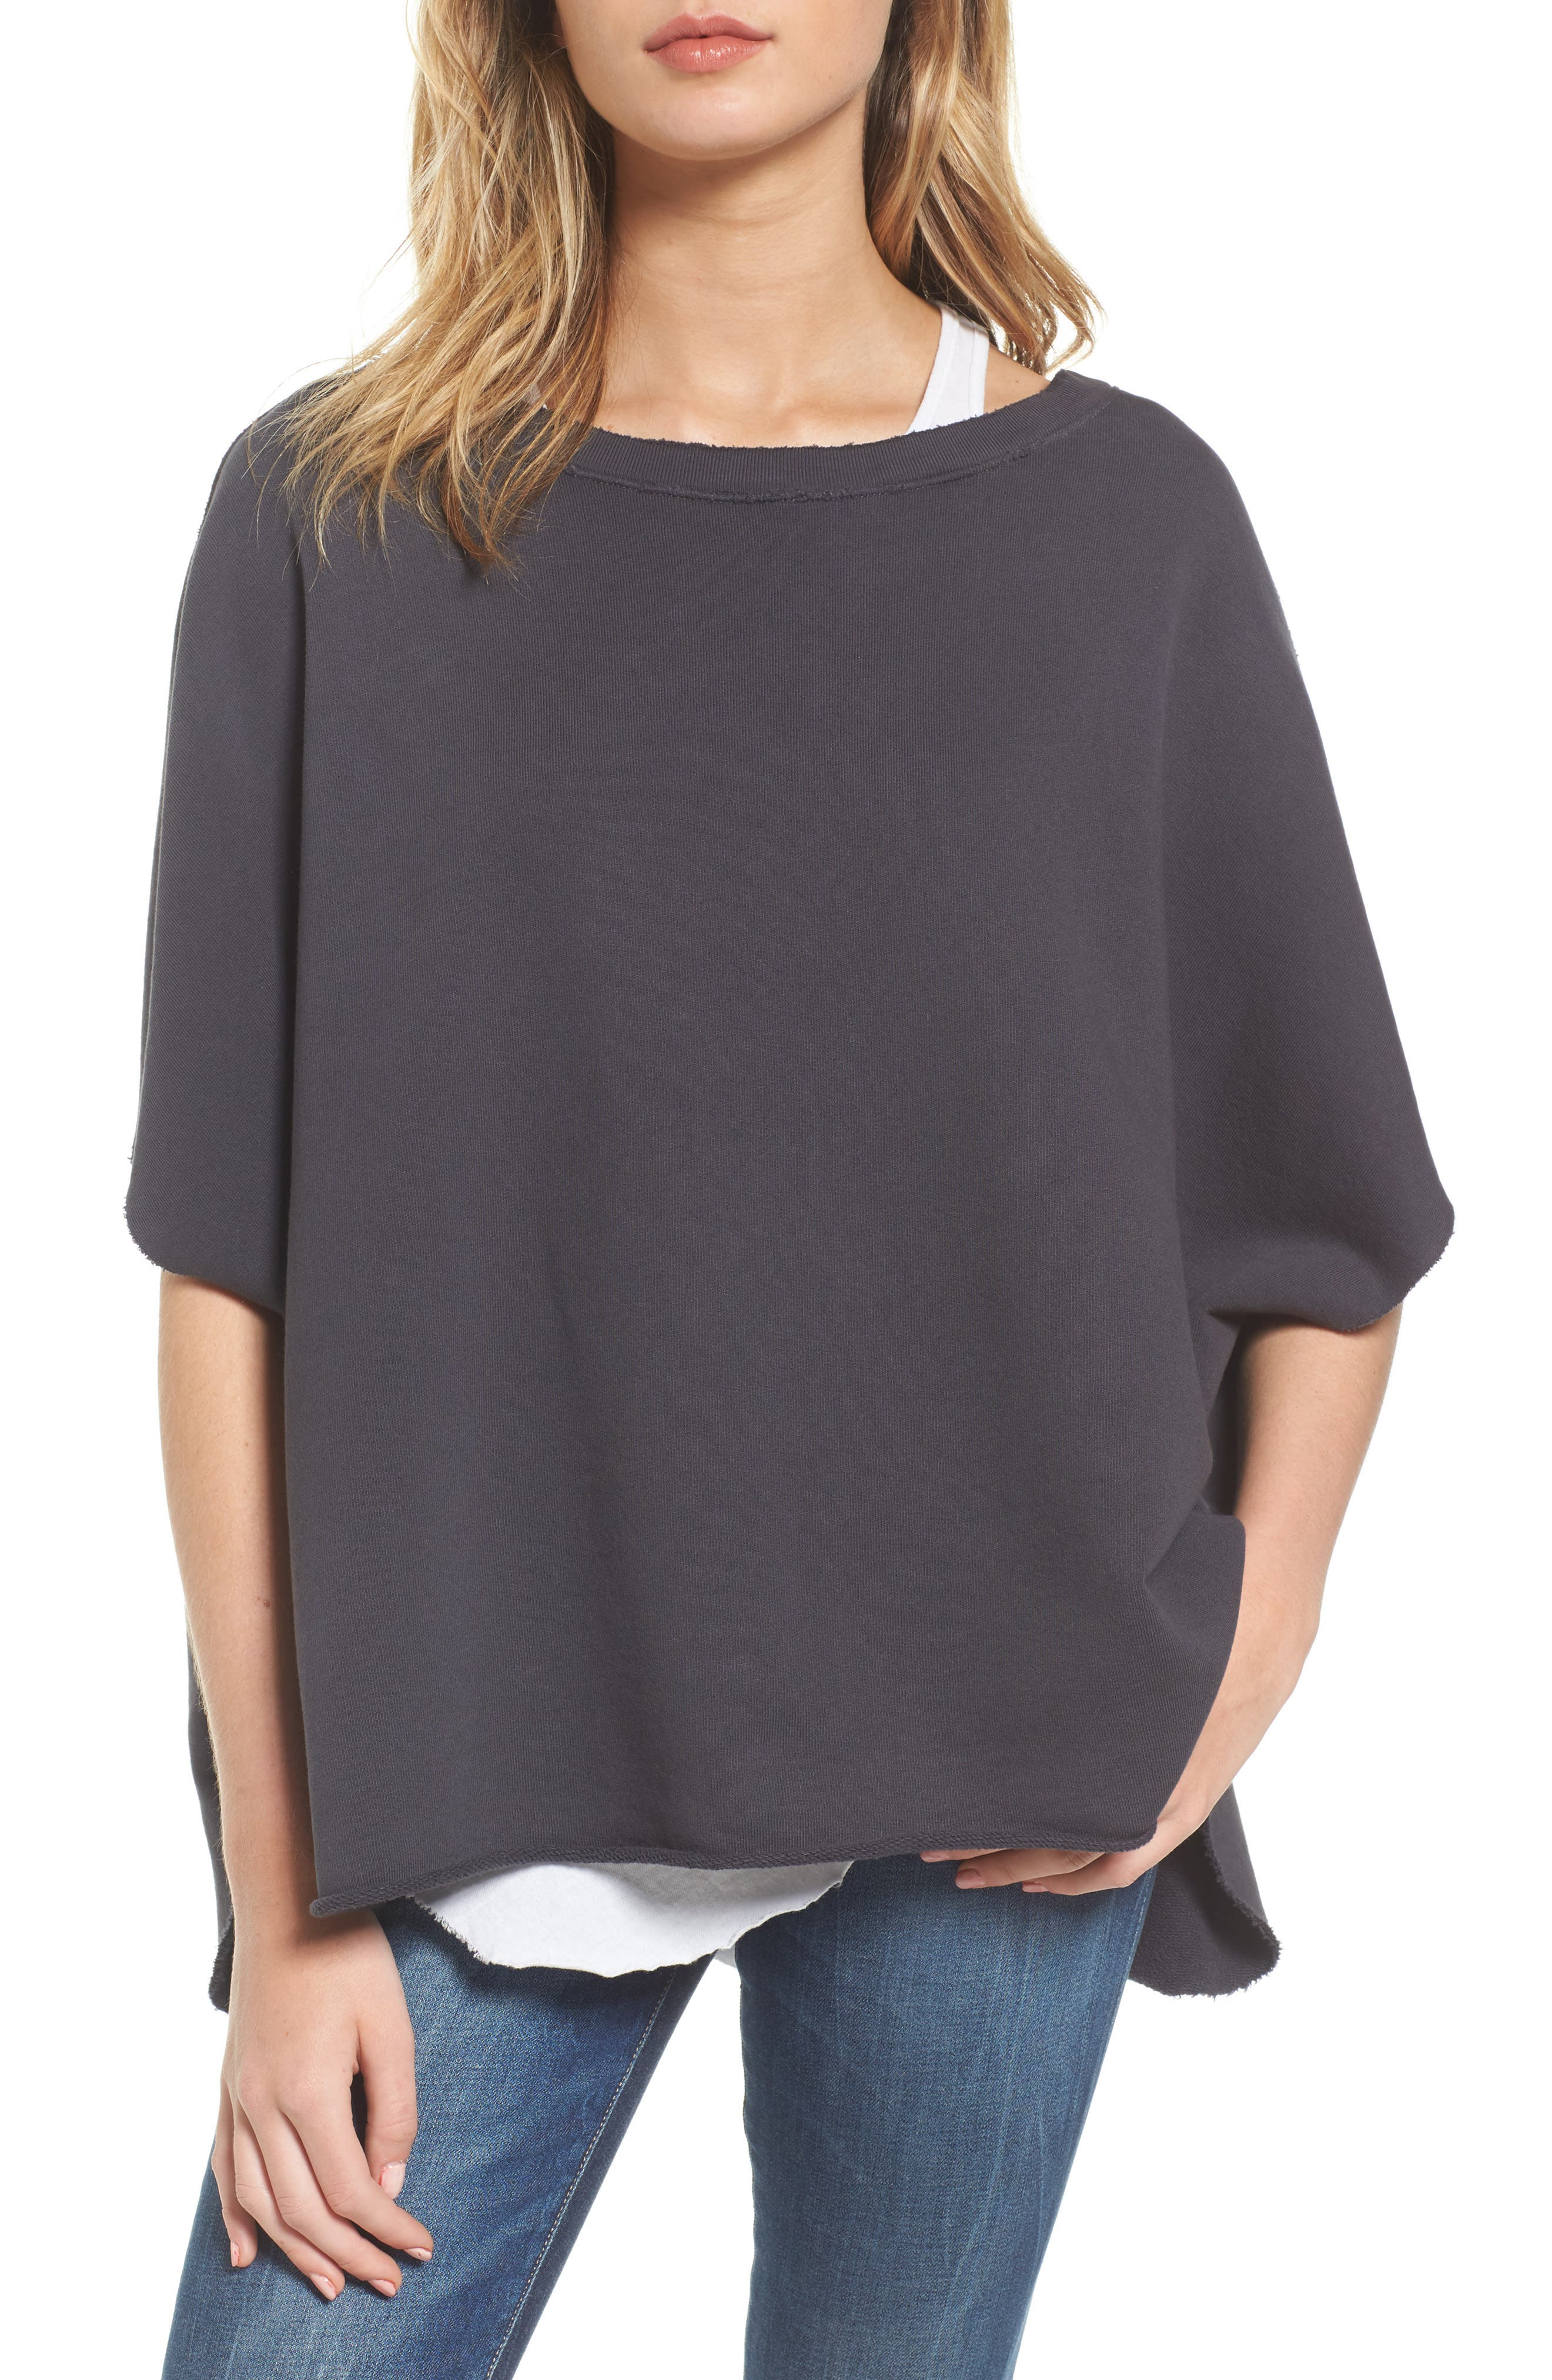 Alternate Image 1 Selected - Frank & Eileen Tee Lab Cotton Poncho